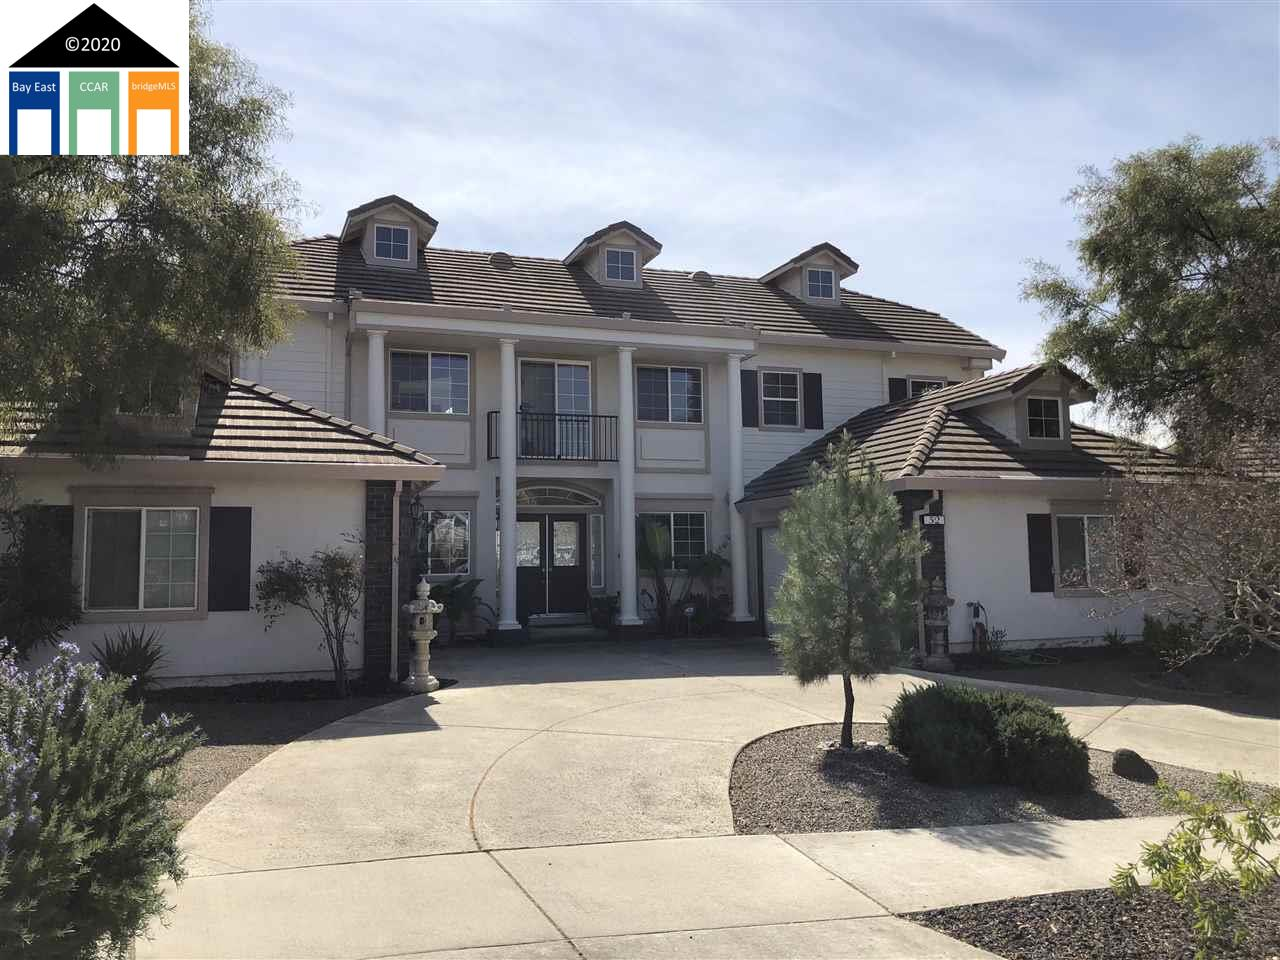 52 E Country Club, BRENTWOOD, CA 94513